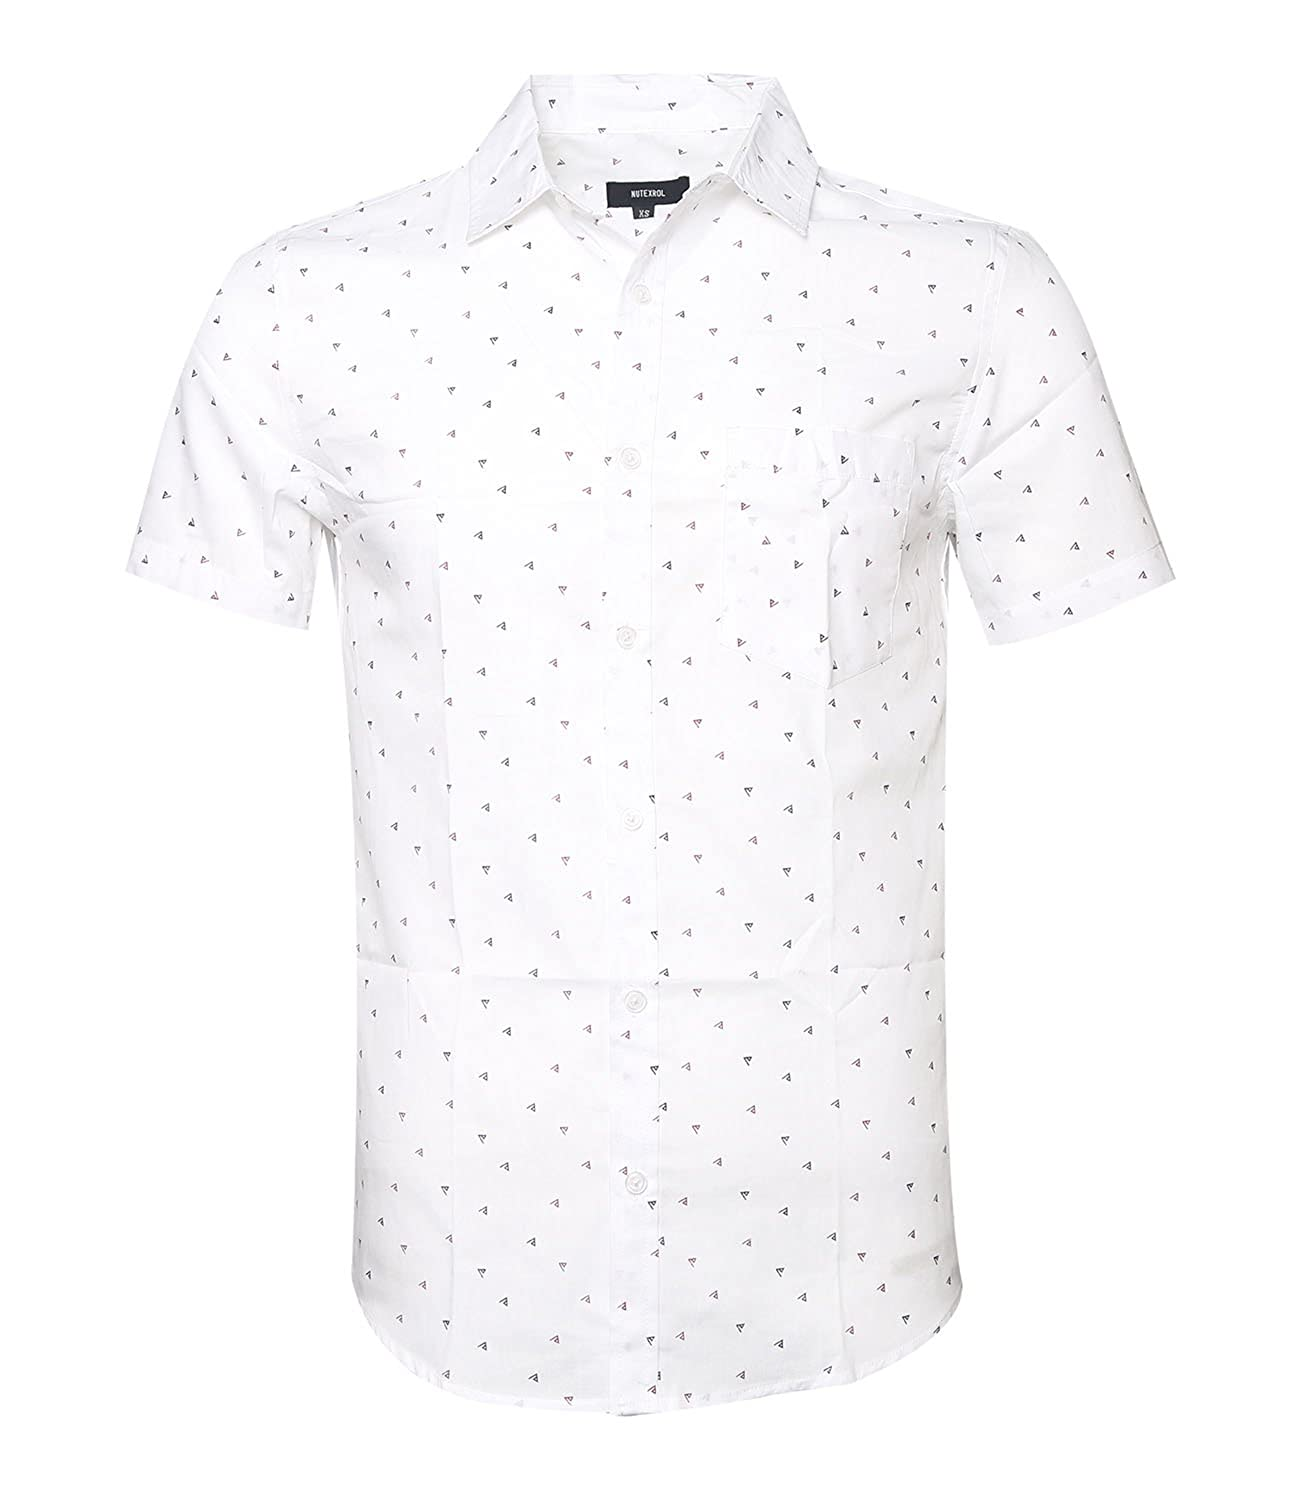 63a44a9aca2 Amazon.com  NUTEXROL Men s Printed Short Sleeve Button Down Work Casual  Western Shirt  Clothing